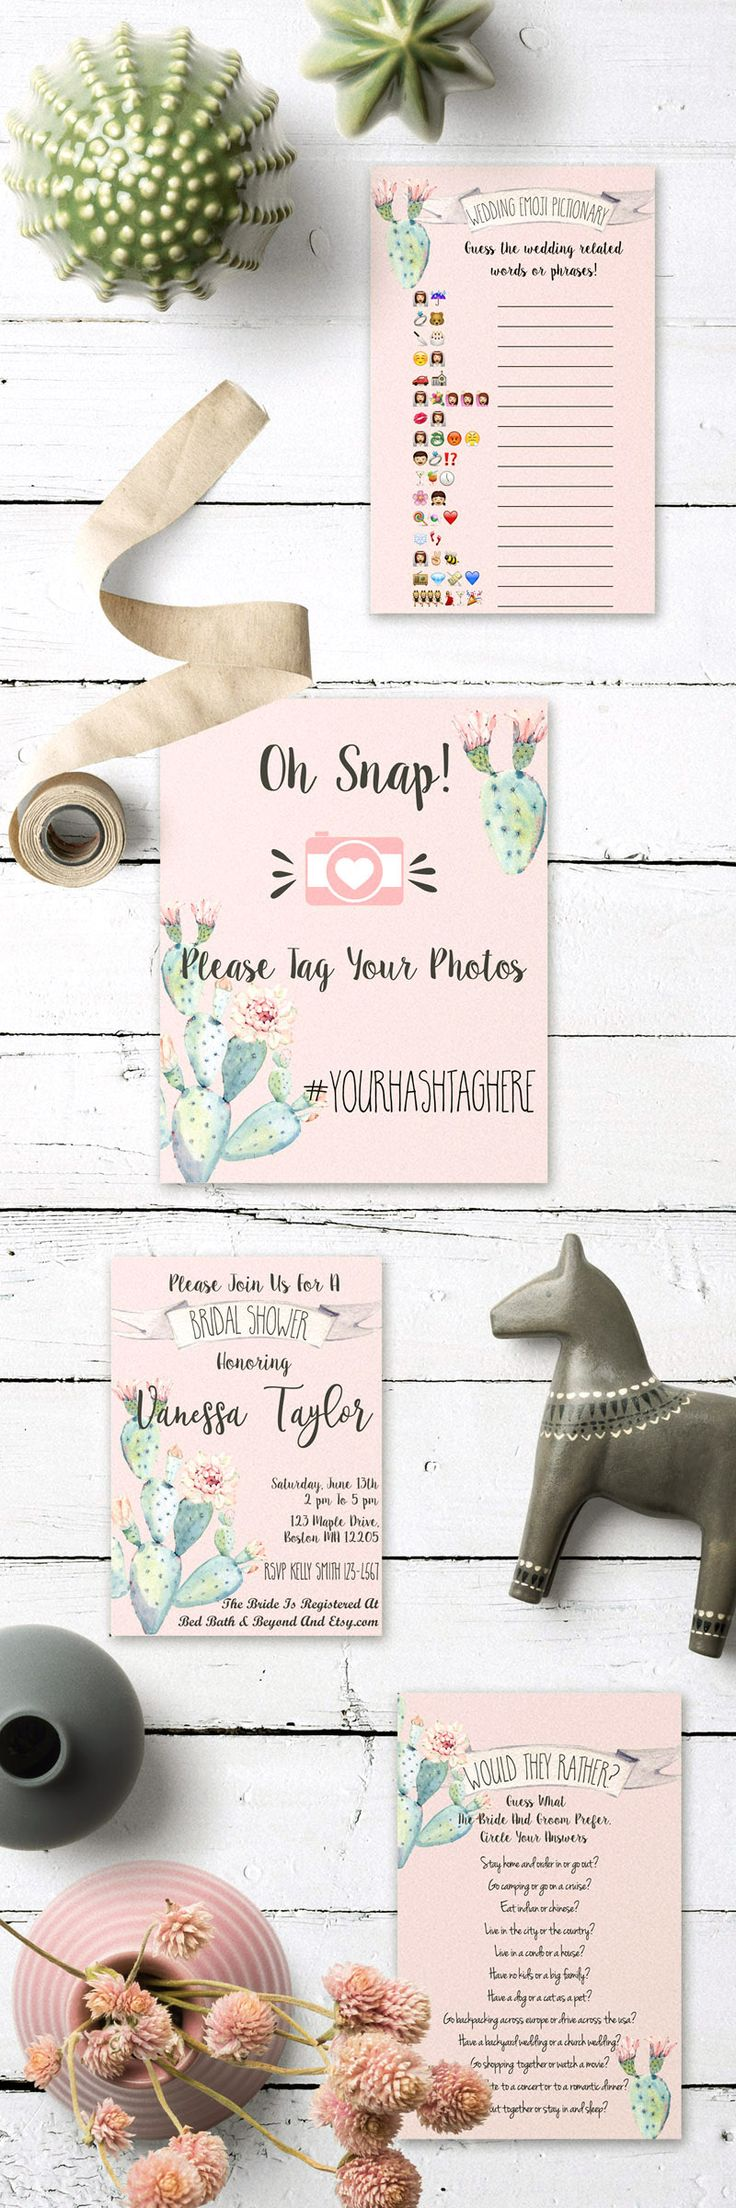 wedding shower game ideas pinterest%0A get these beautiful succulent themed bridal shower games and bridal shower  signs and decor in my